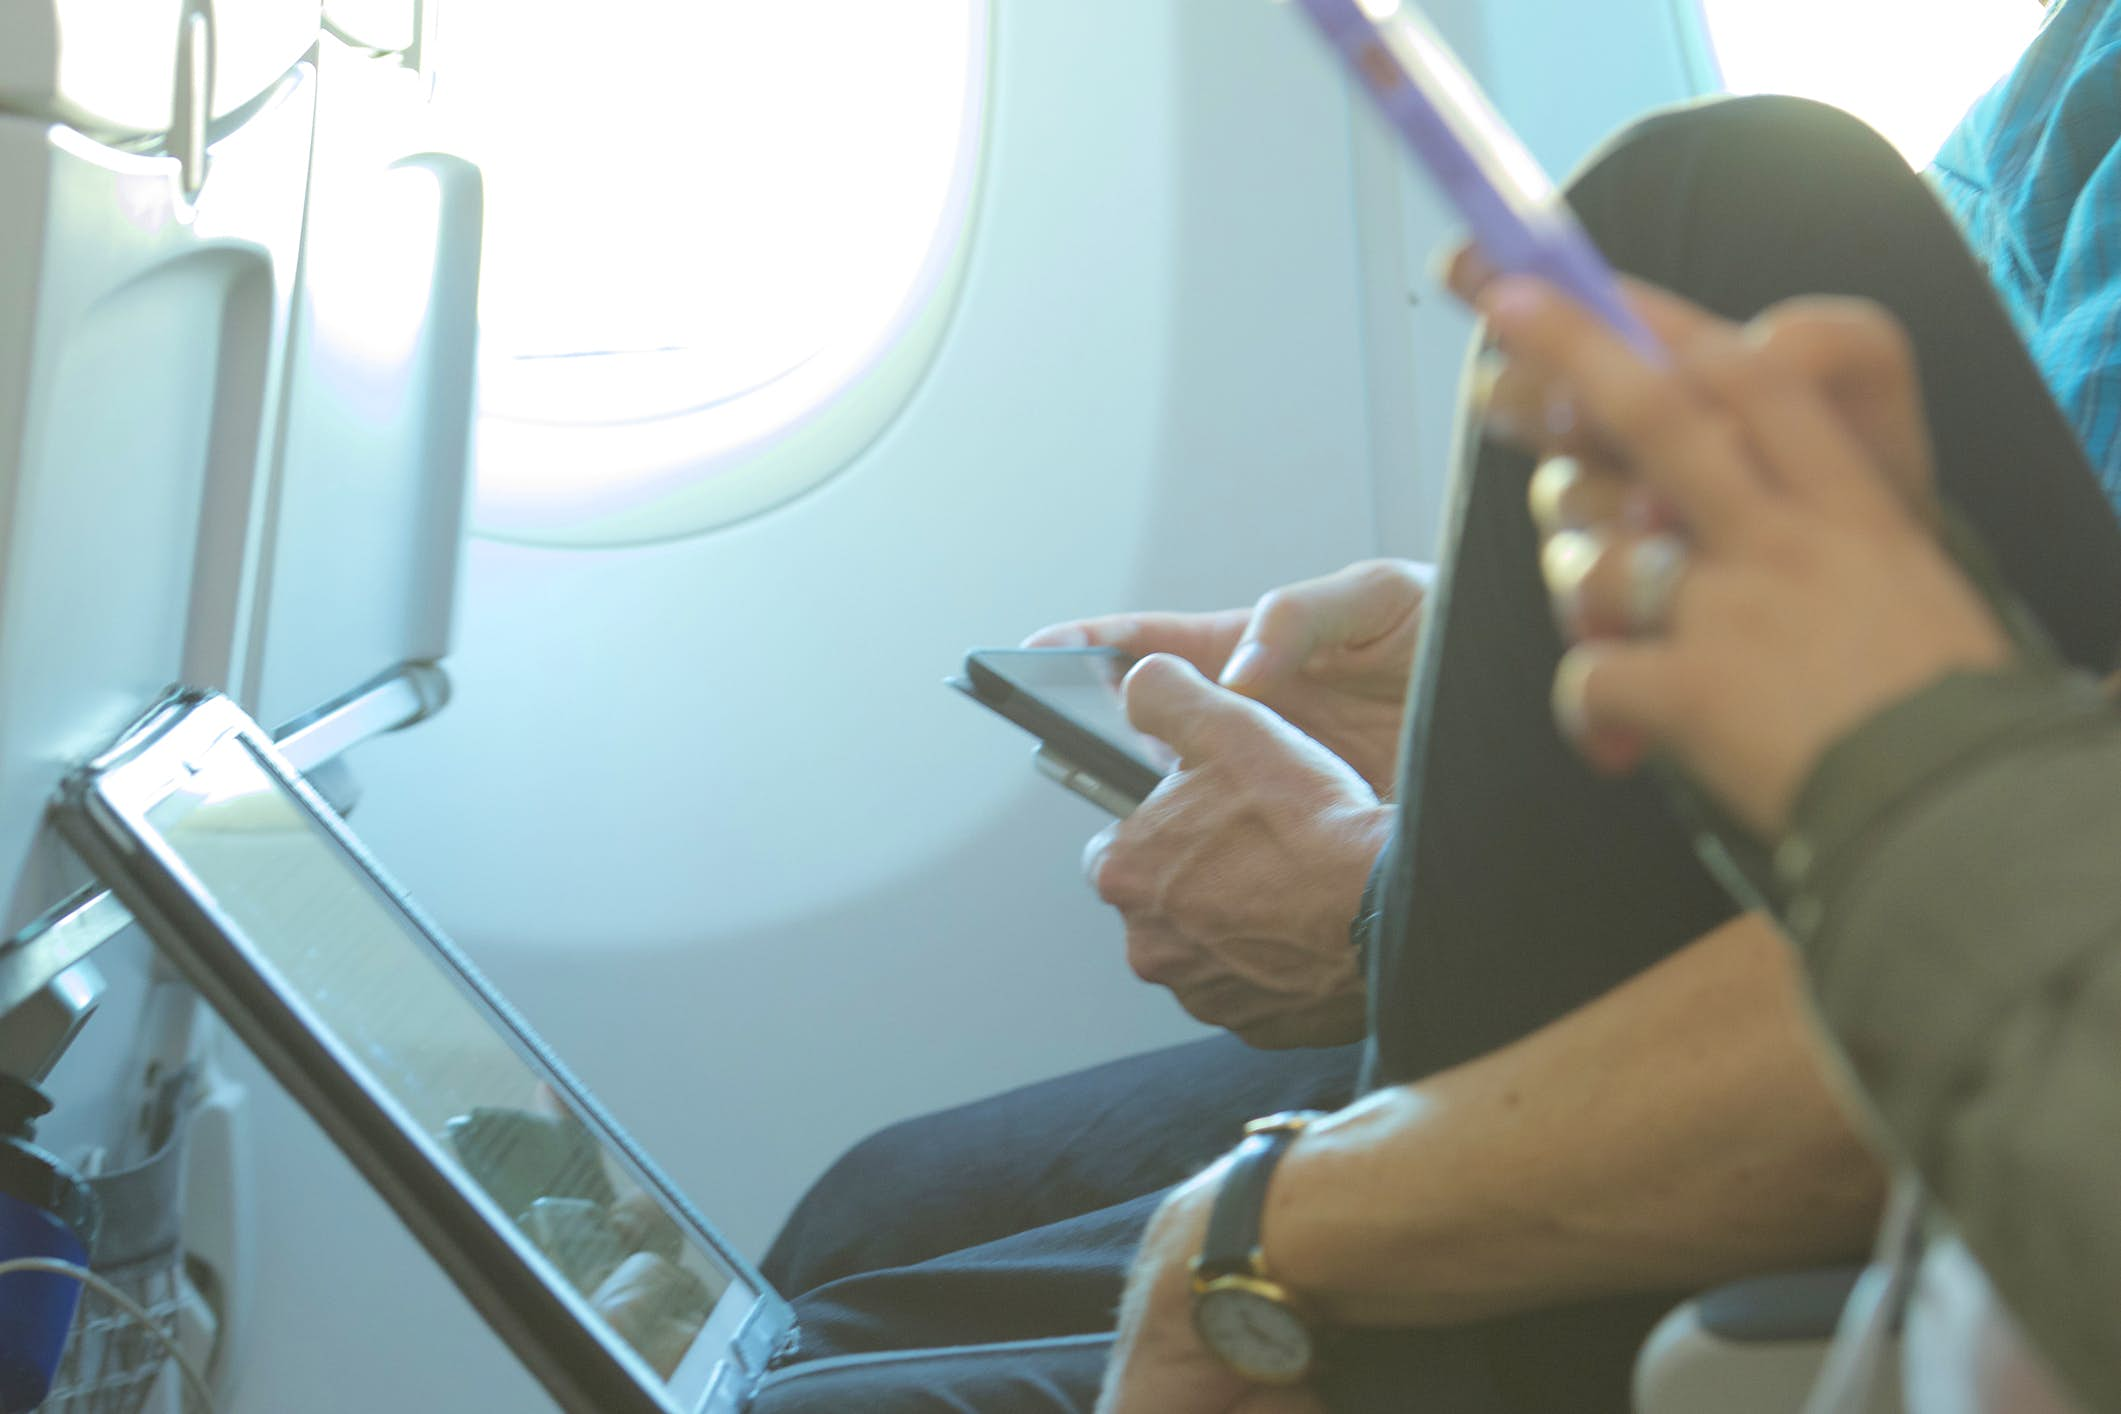 Travel News - laptops and smartphones in airplane seat